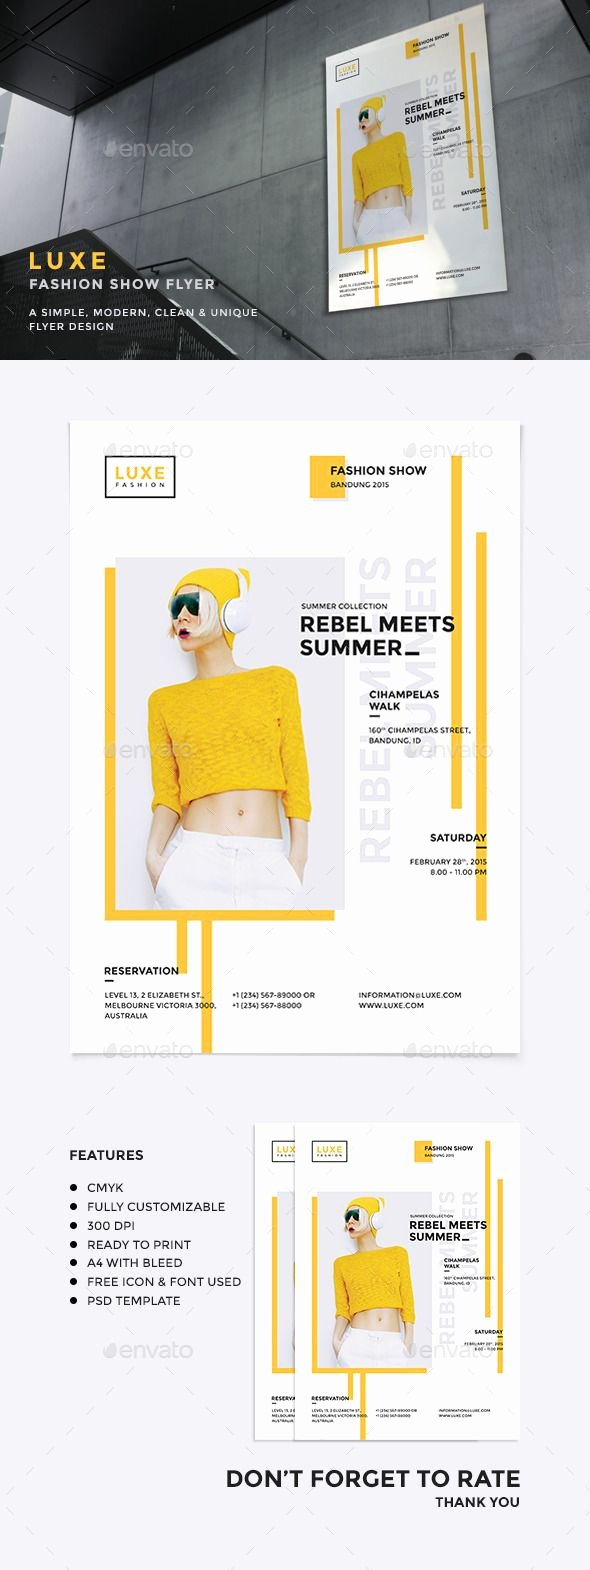 Fashion Show Flyer Template Inspirational Luxe Fashion Show Flyer